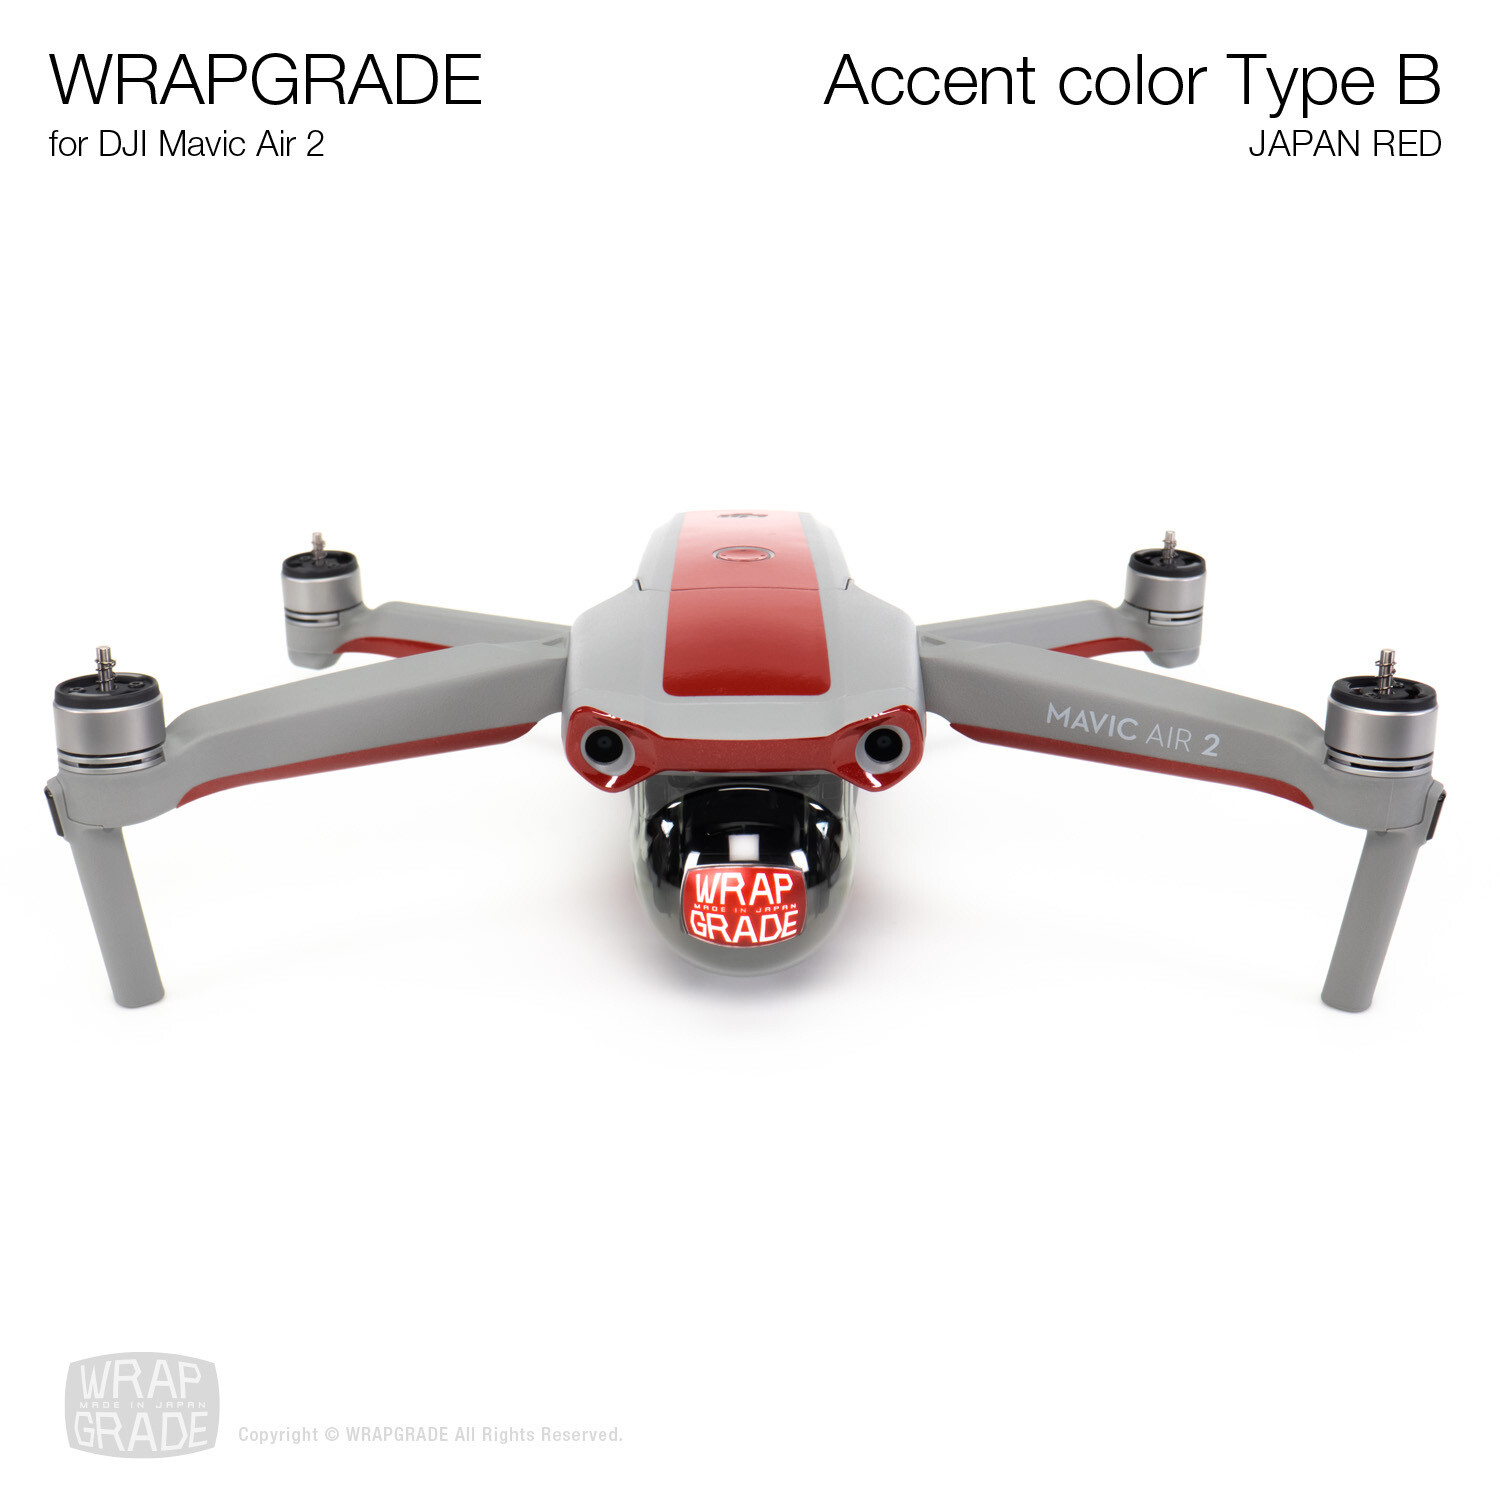 Wrapgrade for DJI Mavic Air 2 | Accent Color B (JAPAN RED)